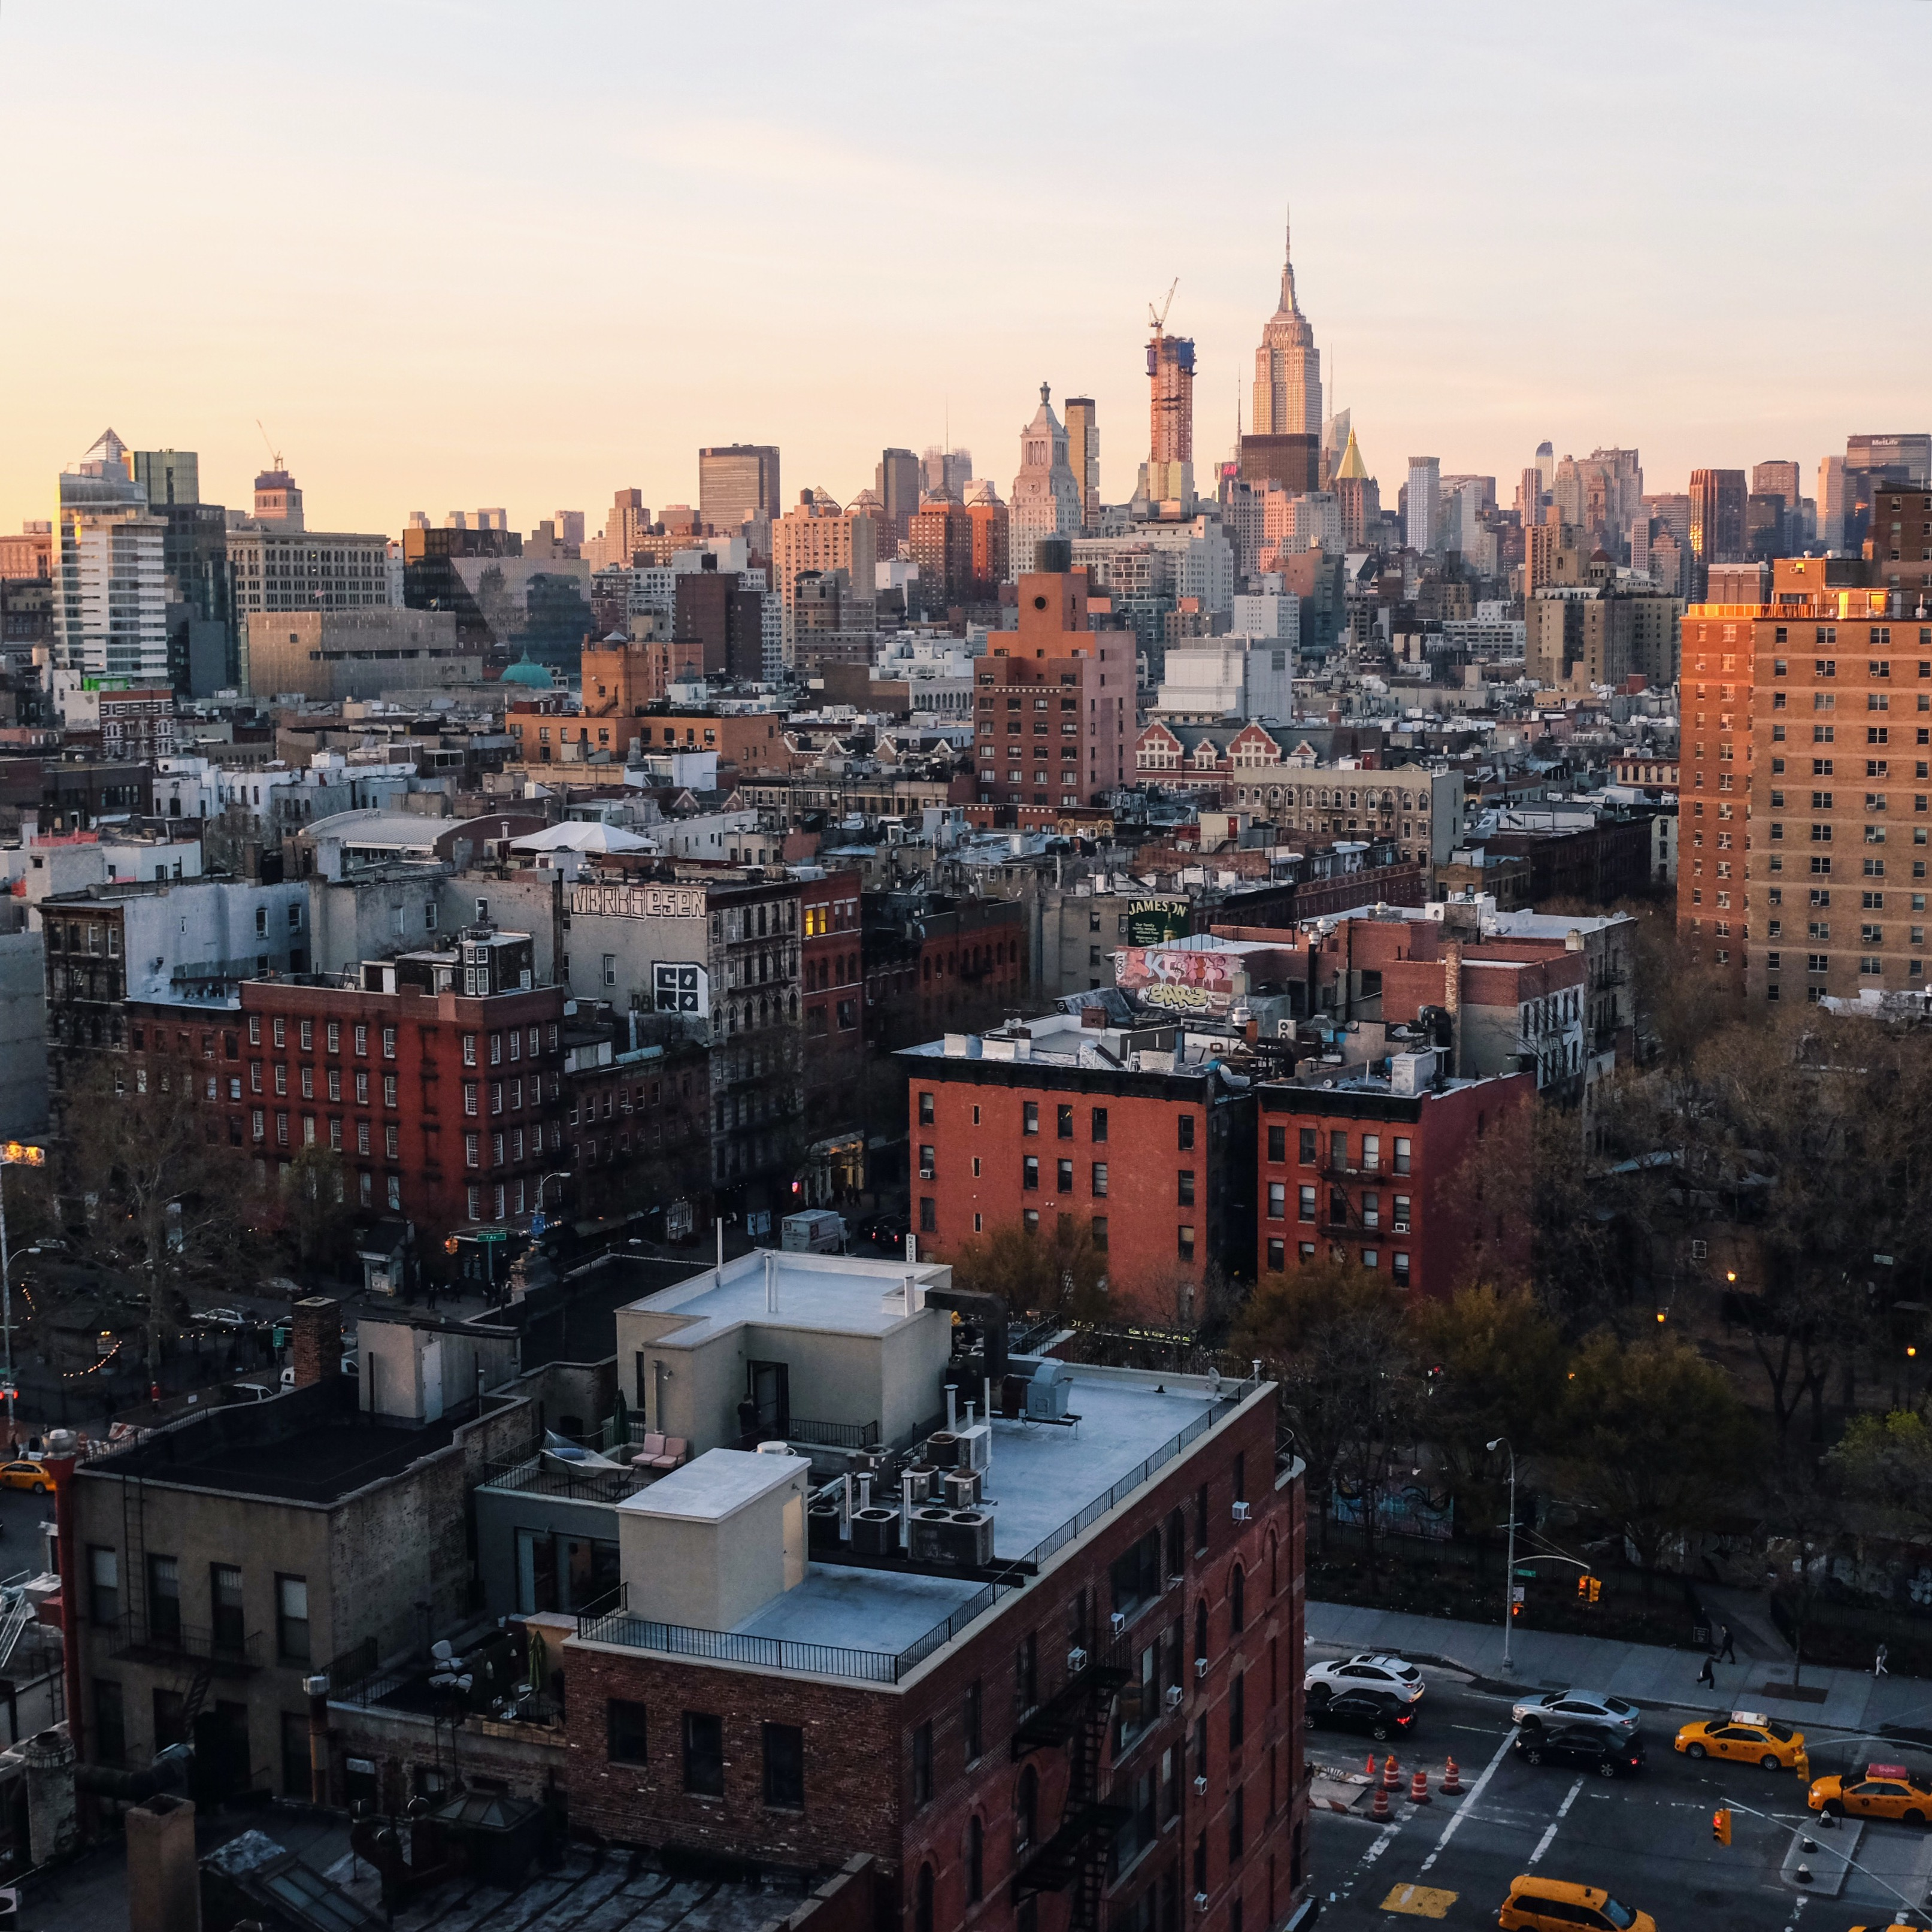 Sunset over Lower East Side